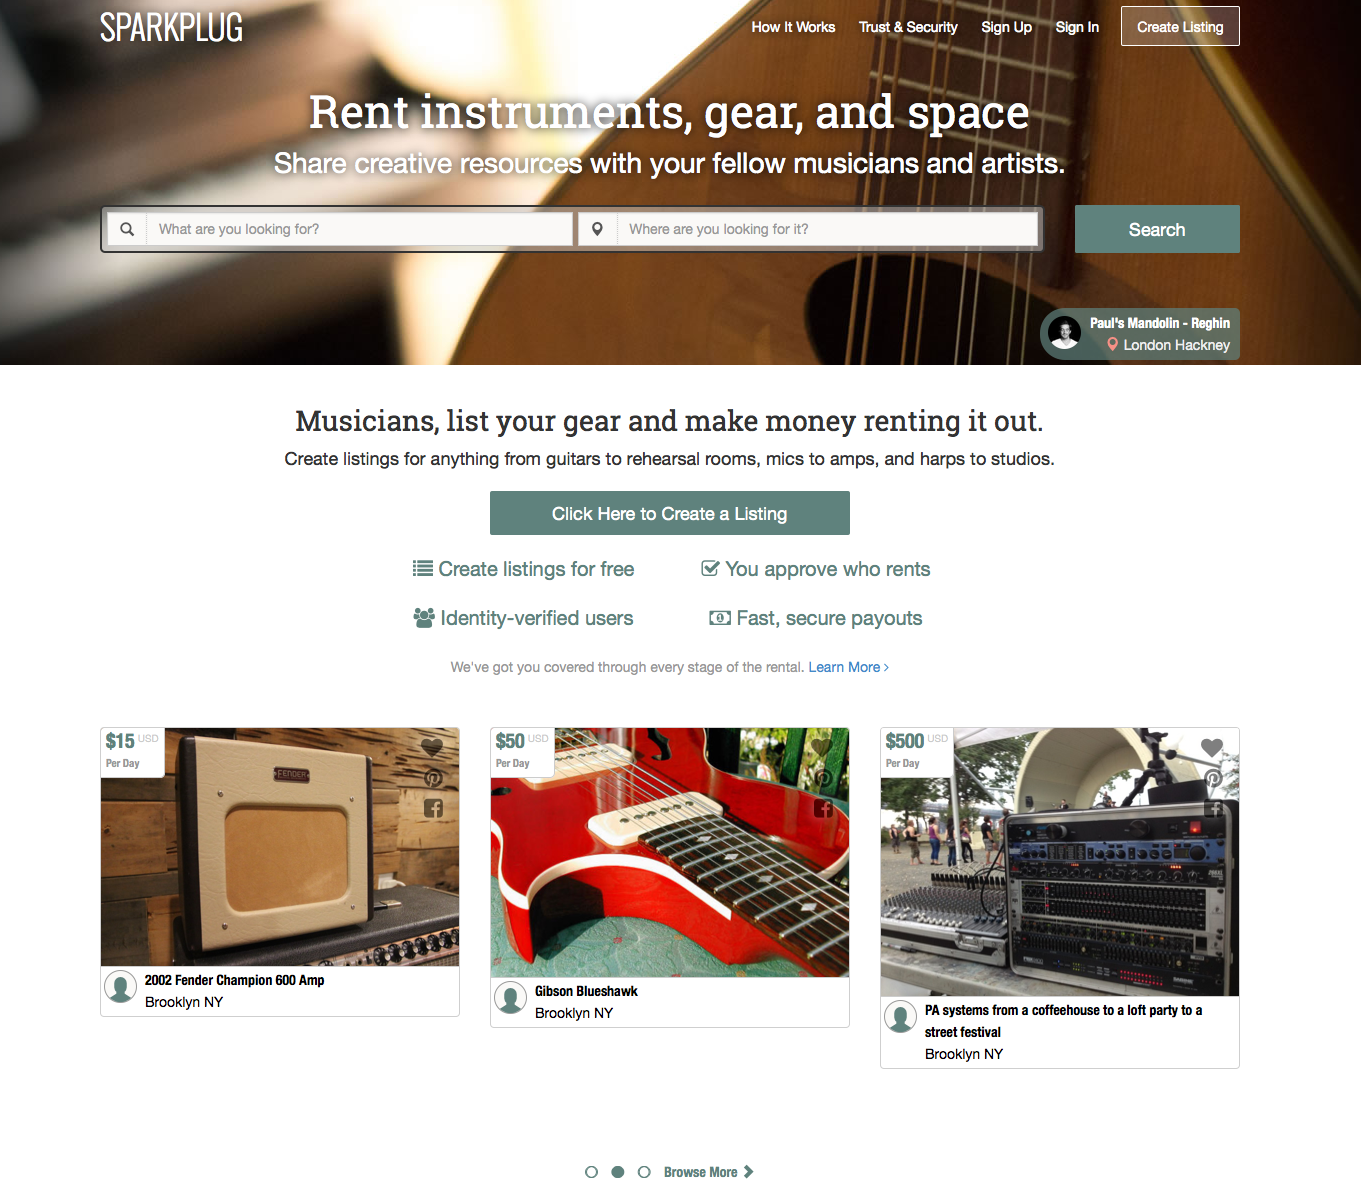 Sparkplug Online Instrument, Gear, and Space Rental Opens